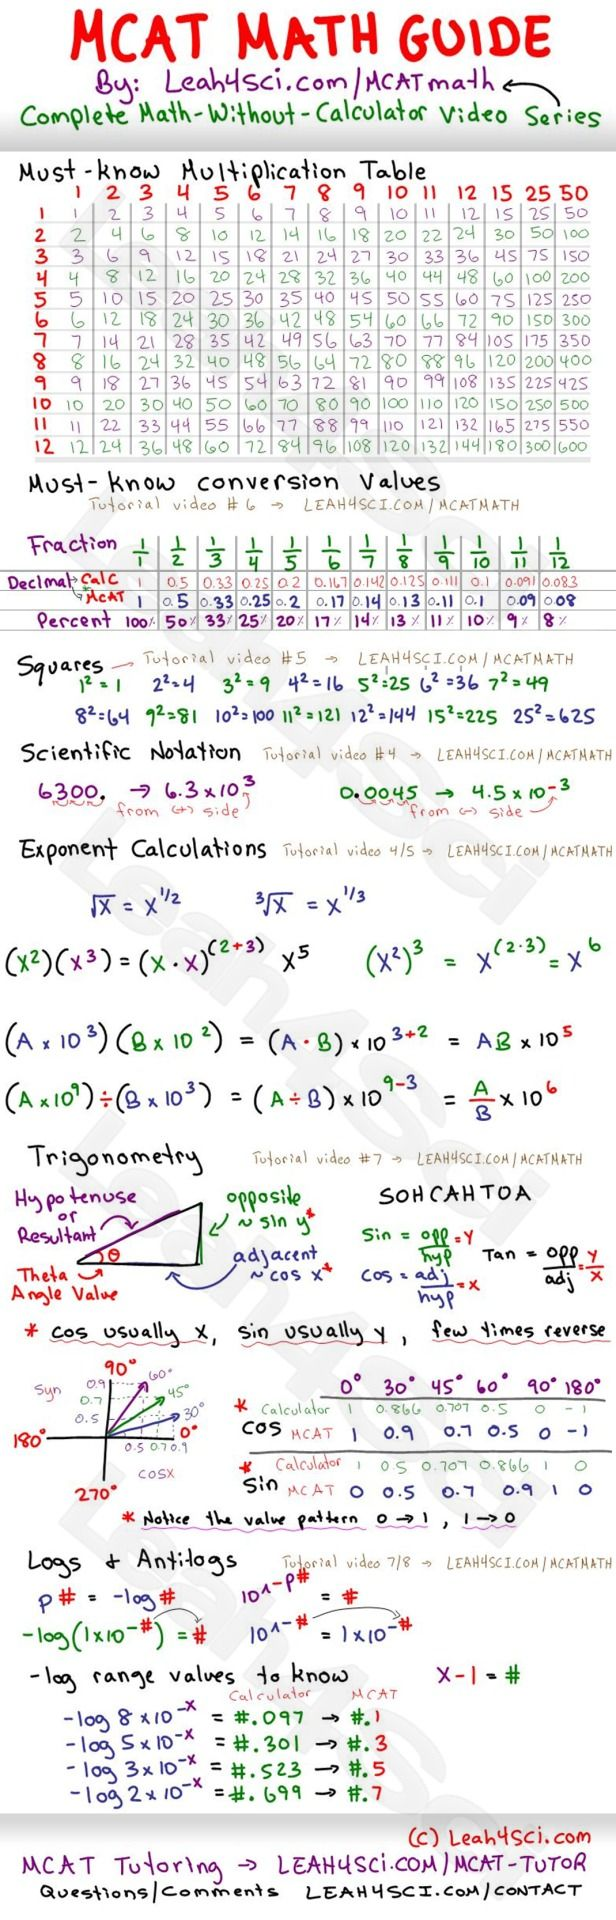 12 Best Geometry Tips Images On Pinterest Formulas New Schematic Software For Engineersquick And Easy Circuits Americasnexttopdoctor Im Passing Along Some Useful Mcat Notes That I Found Online